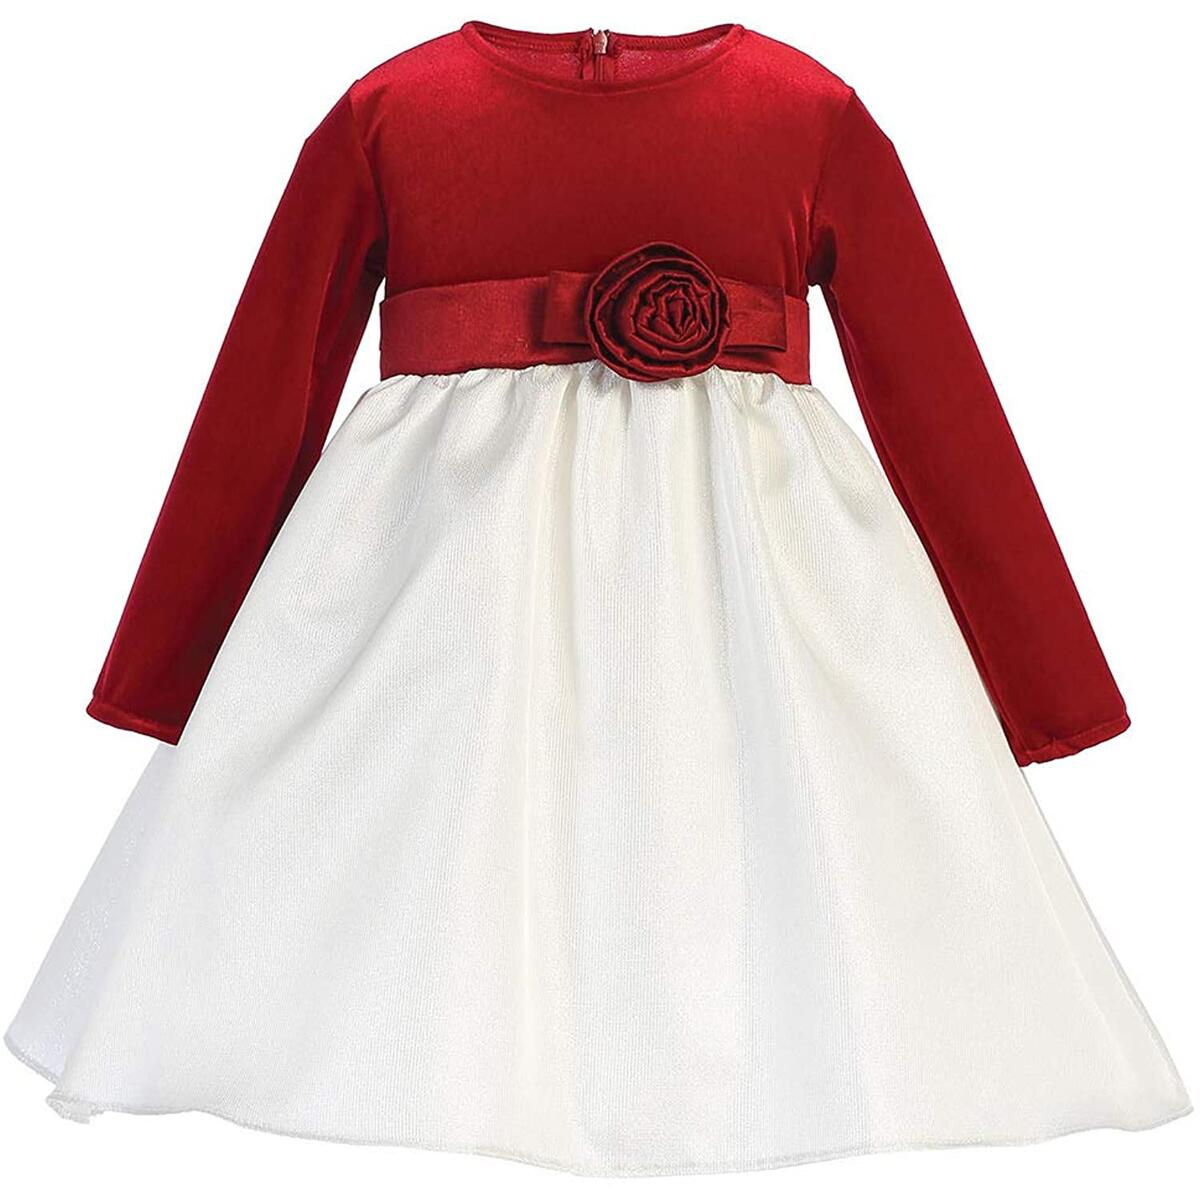 Pink Princess Christmas Dresses for Girls - Red Long Sleeve Baby Toddler Outfits - Made in USA